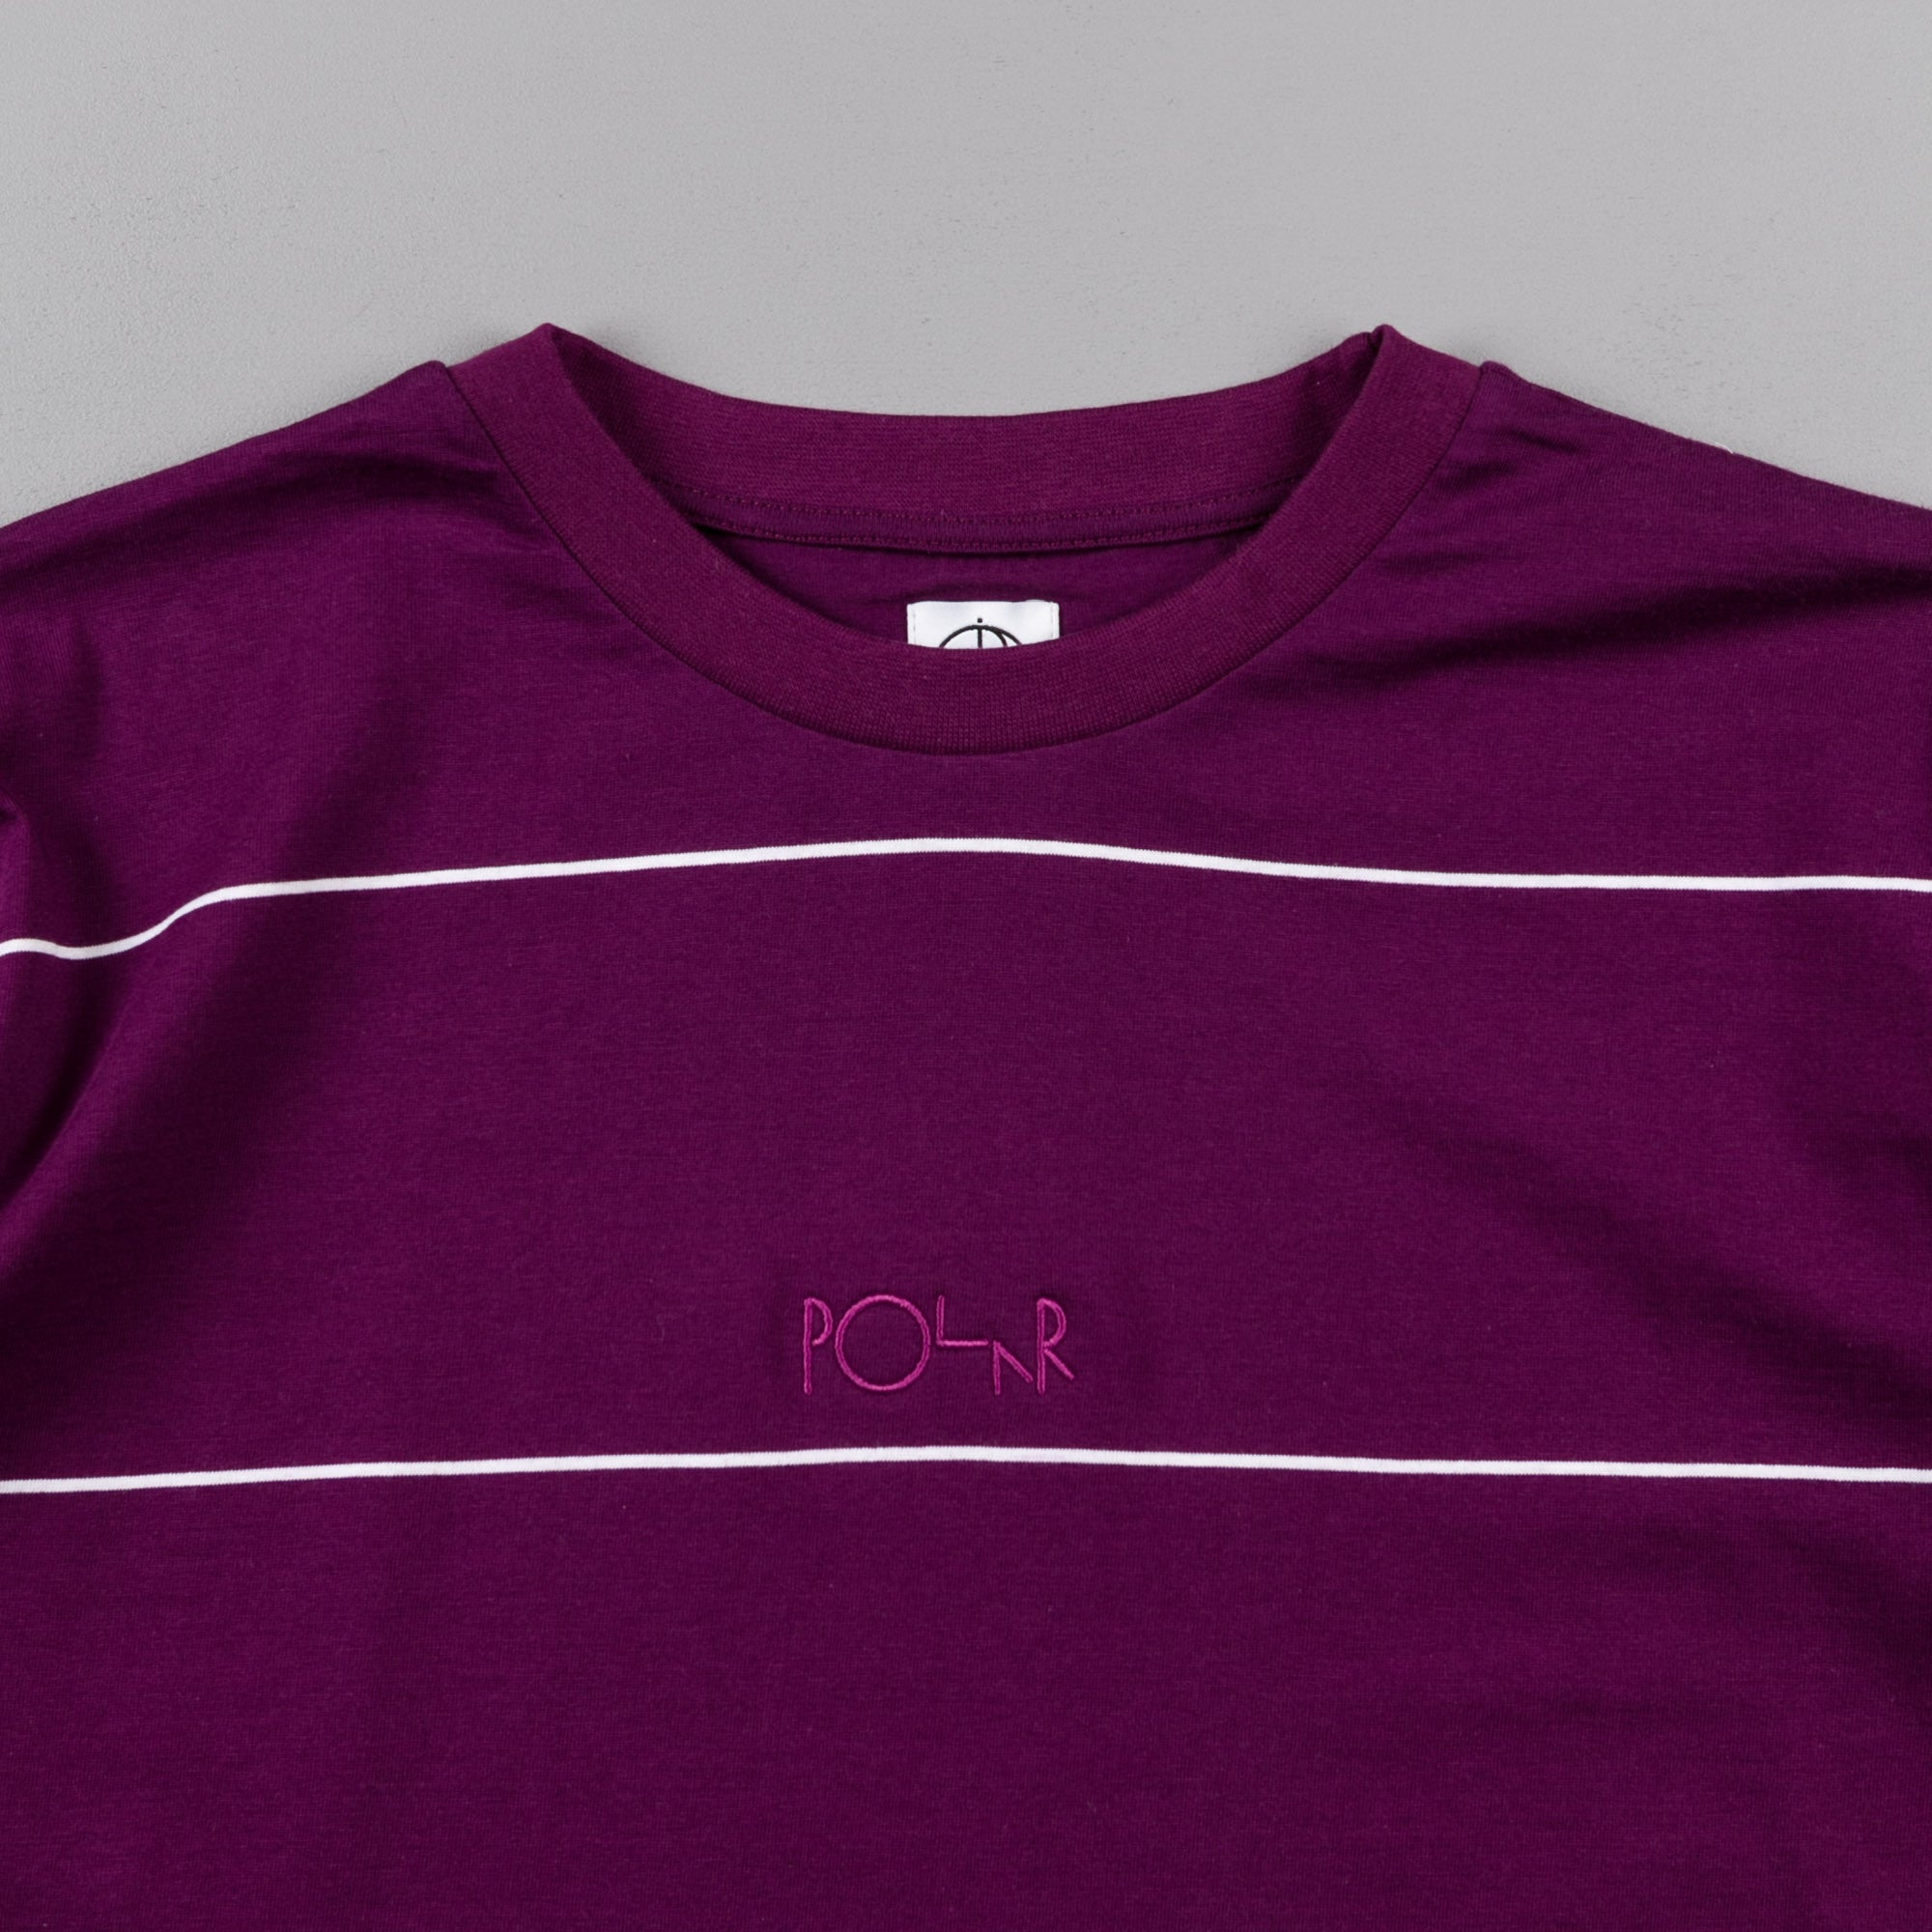 Polar Striped T-Shirt - Dark Prune